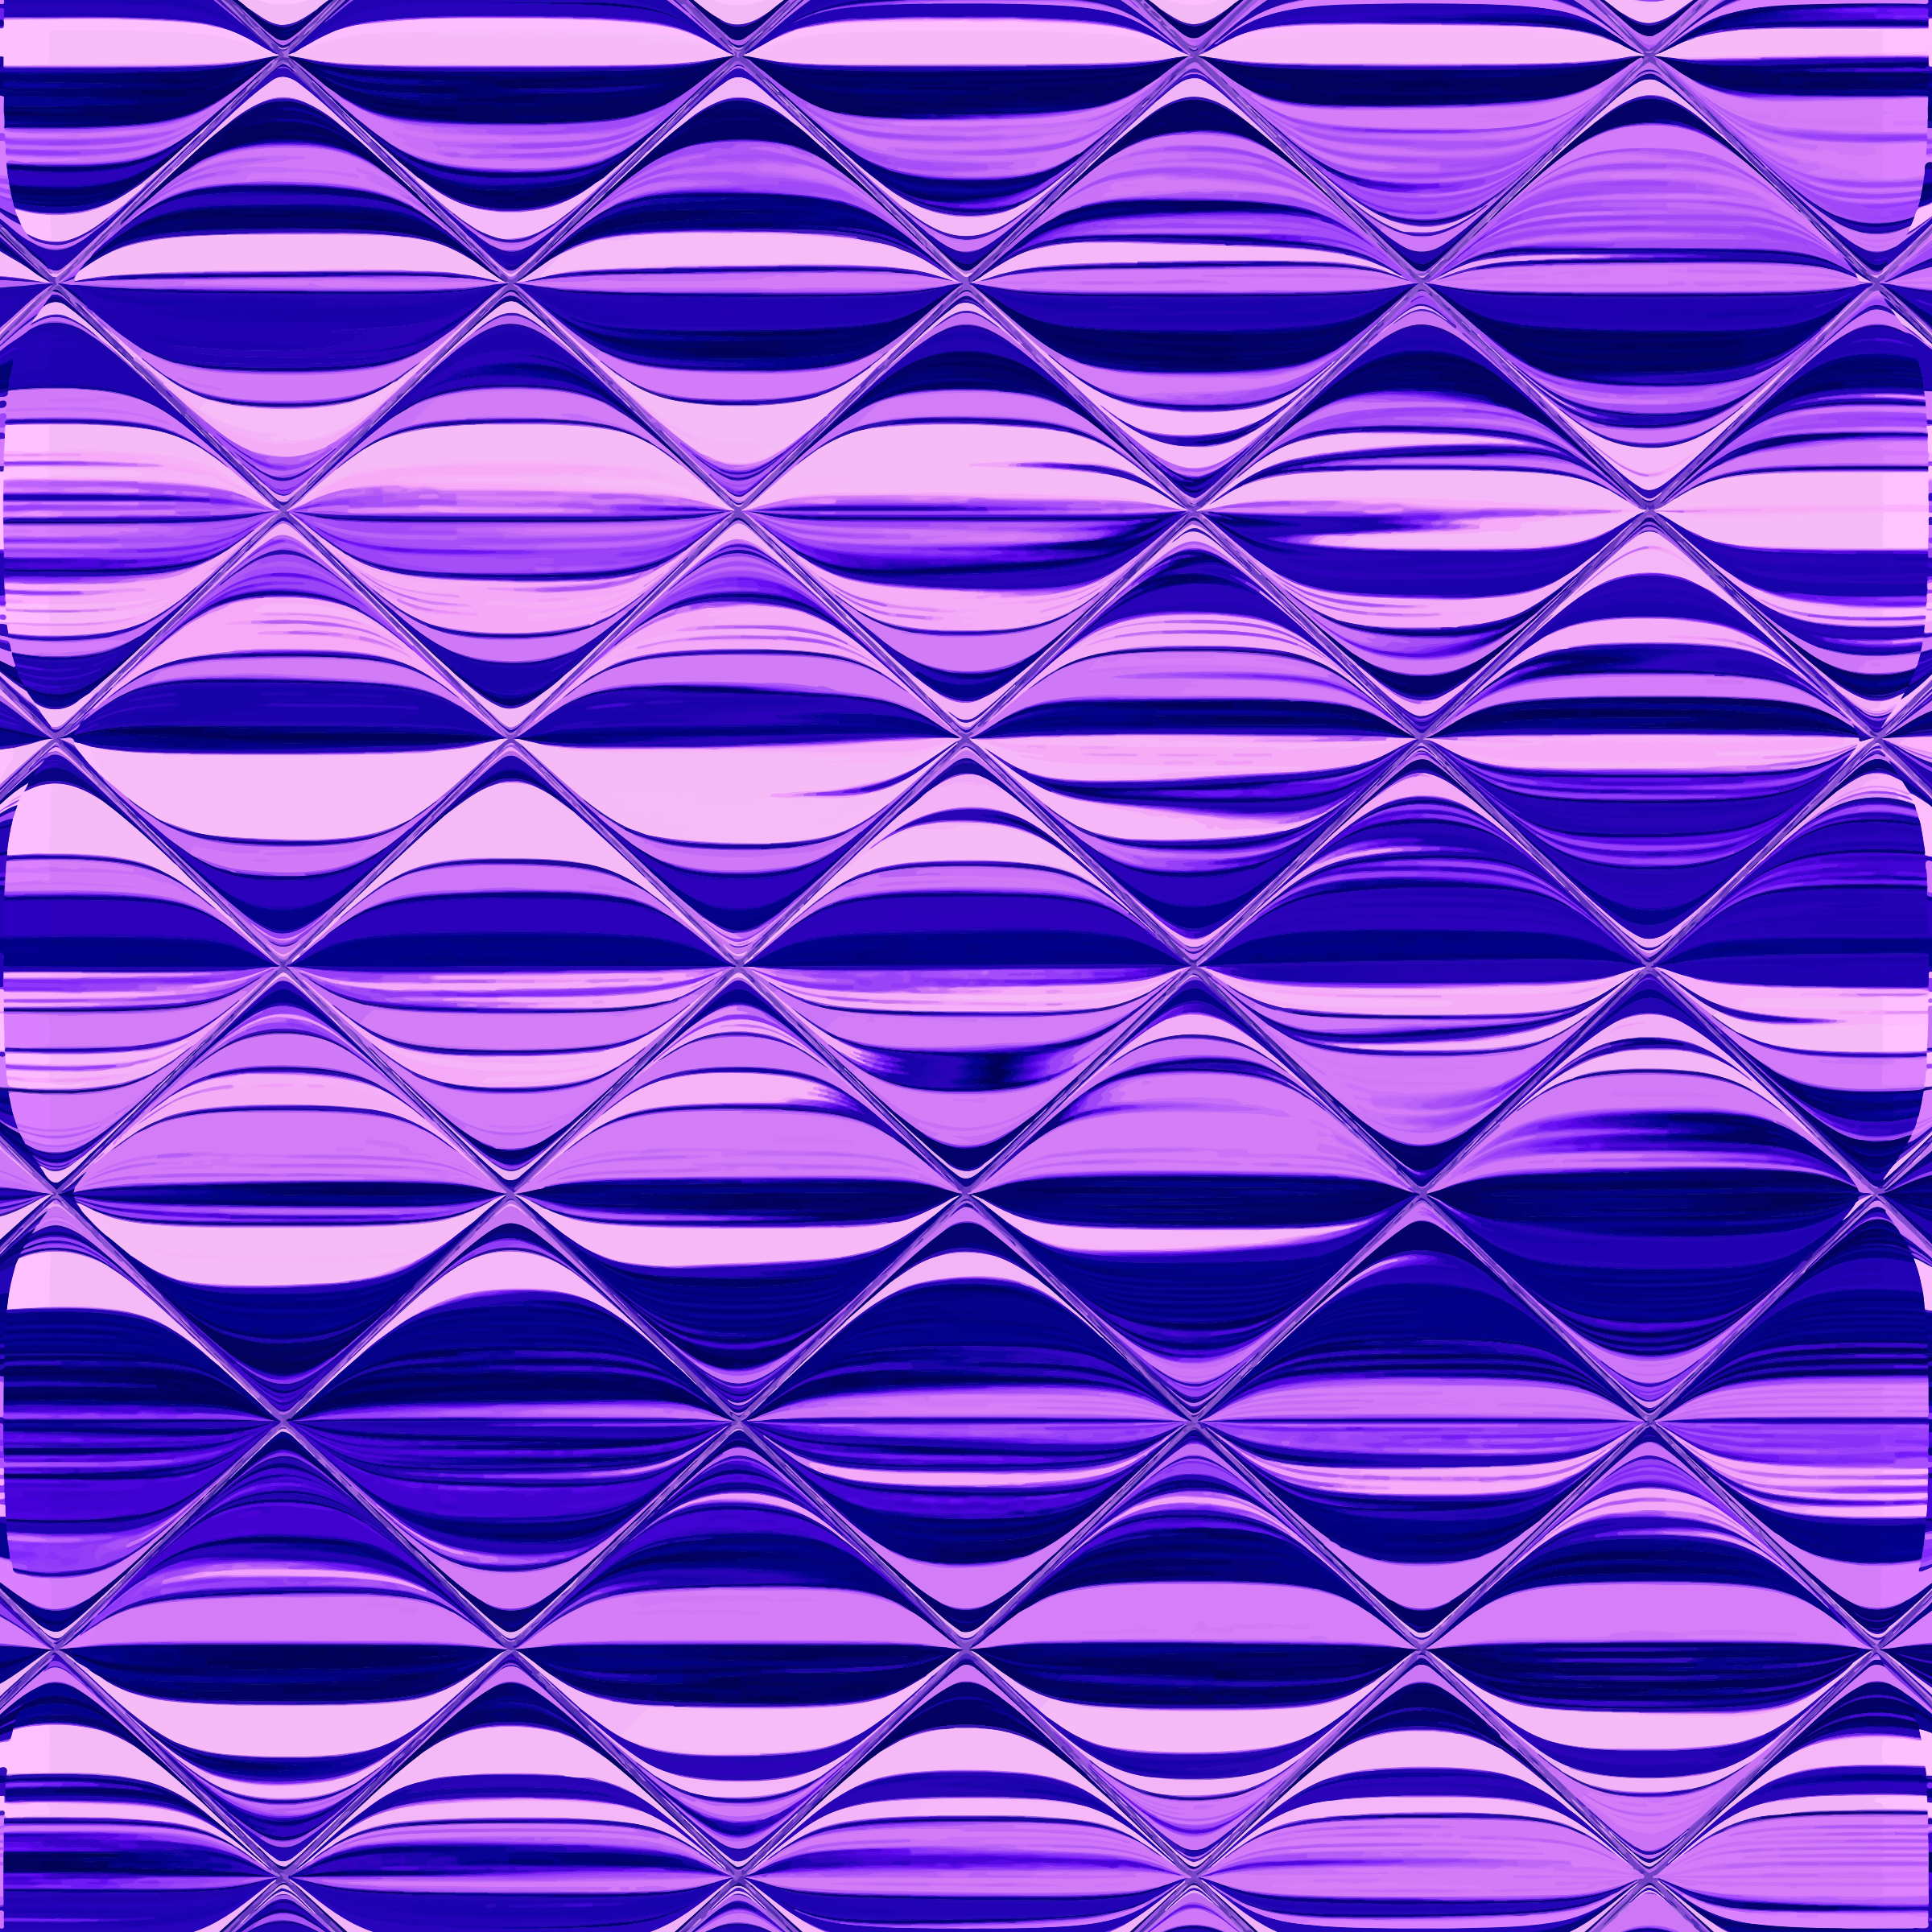 Wavy background 6 (colour 5) by Firkin